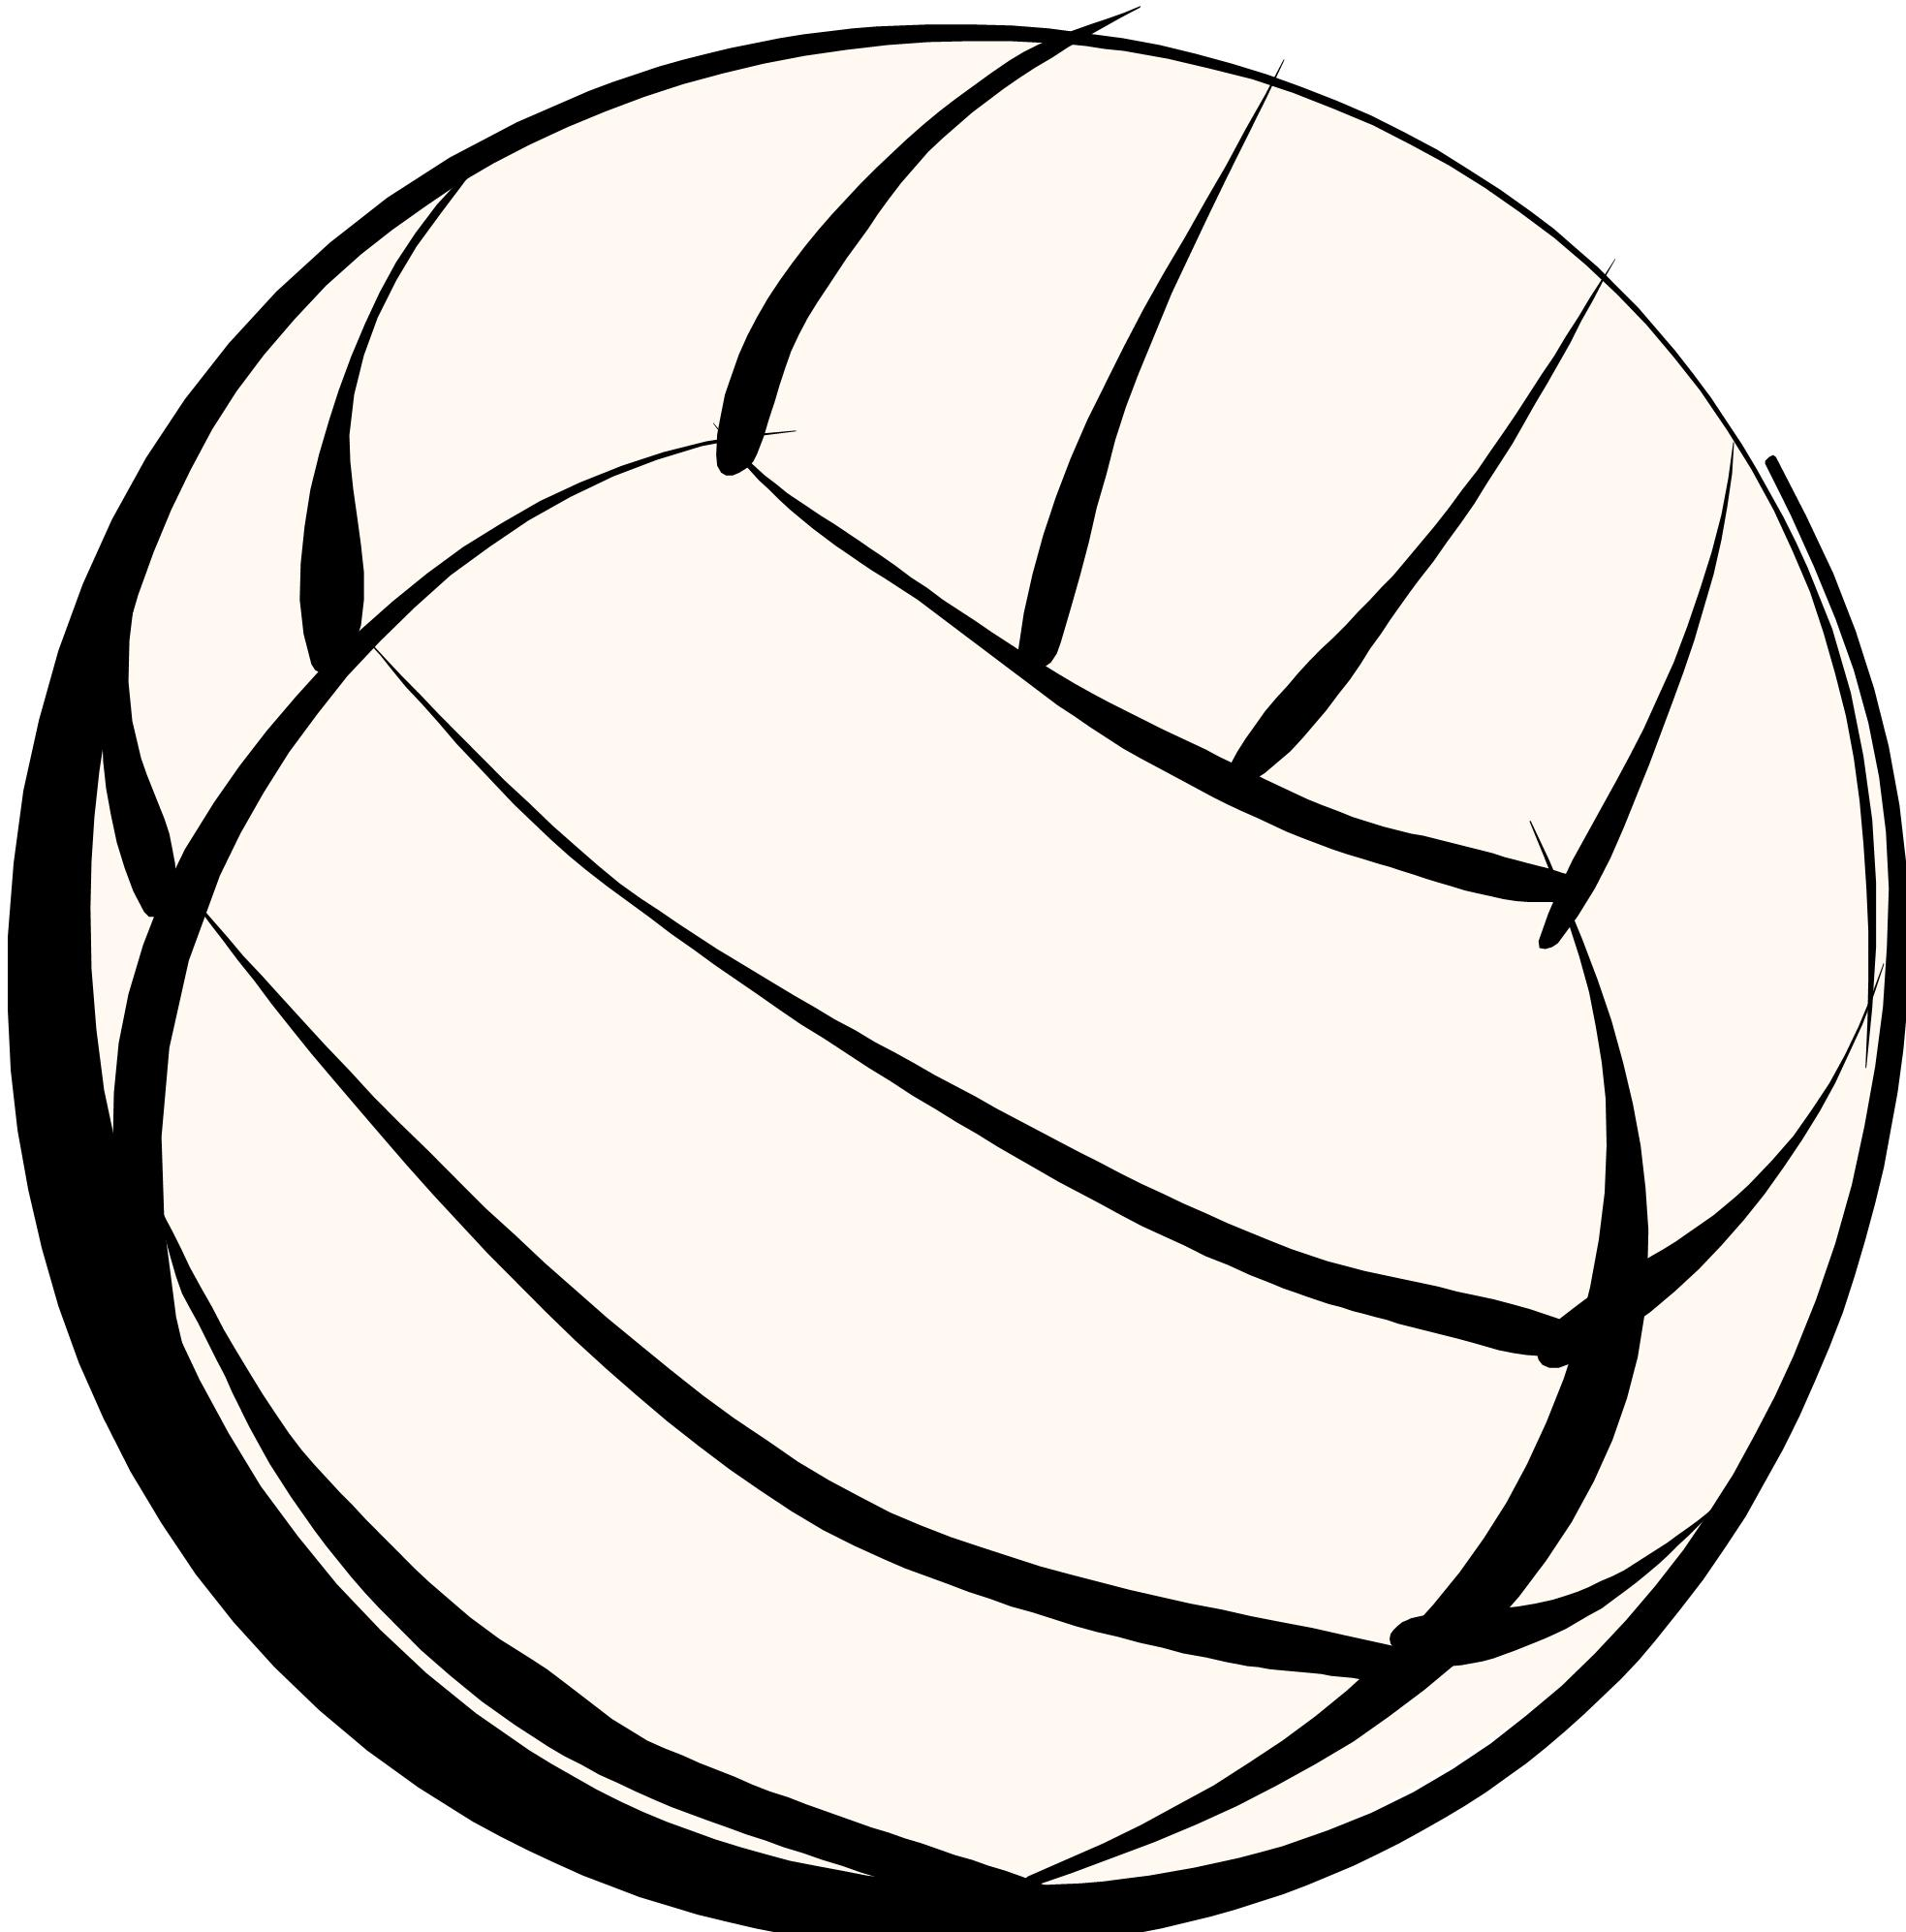 Volleyball jpg clipart banner black and white stock Volleyball Ball Clipart - Clipart Kid banner black and white stock